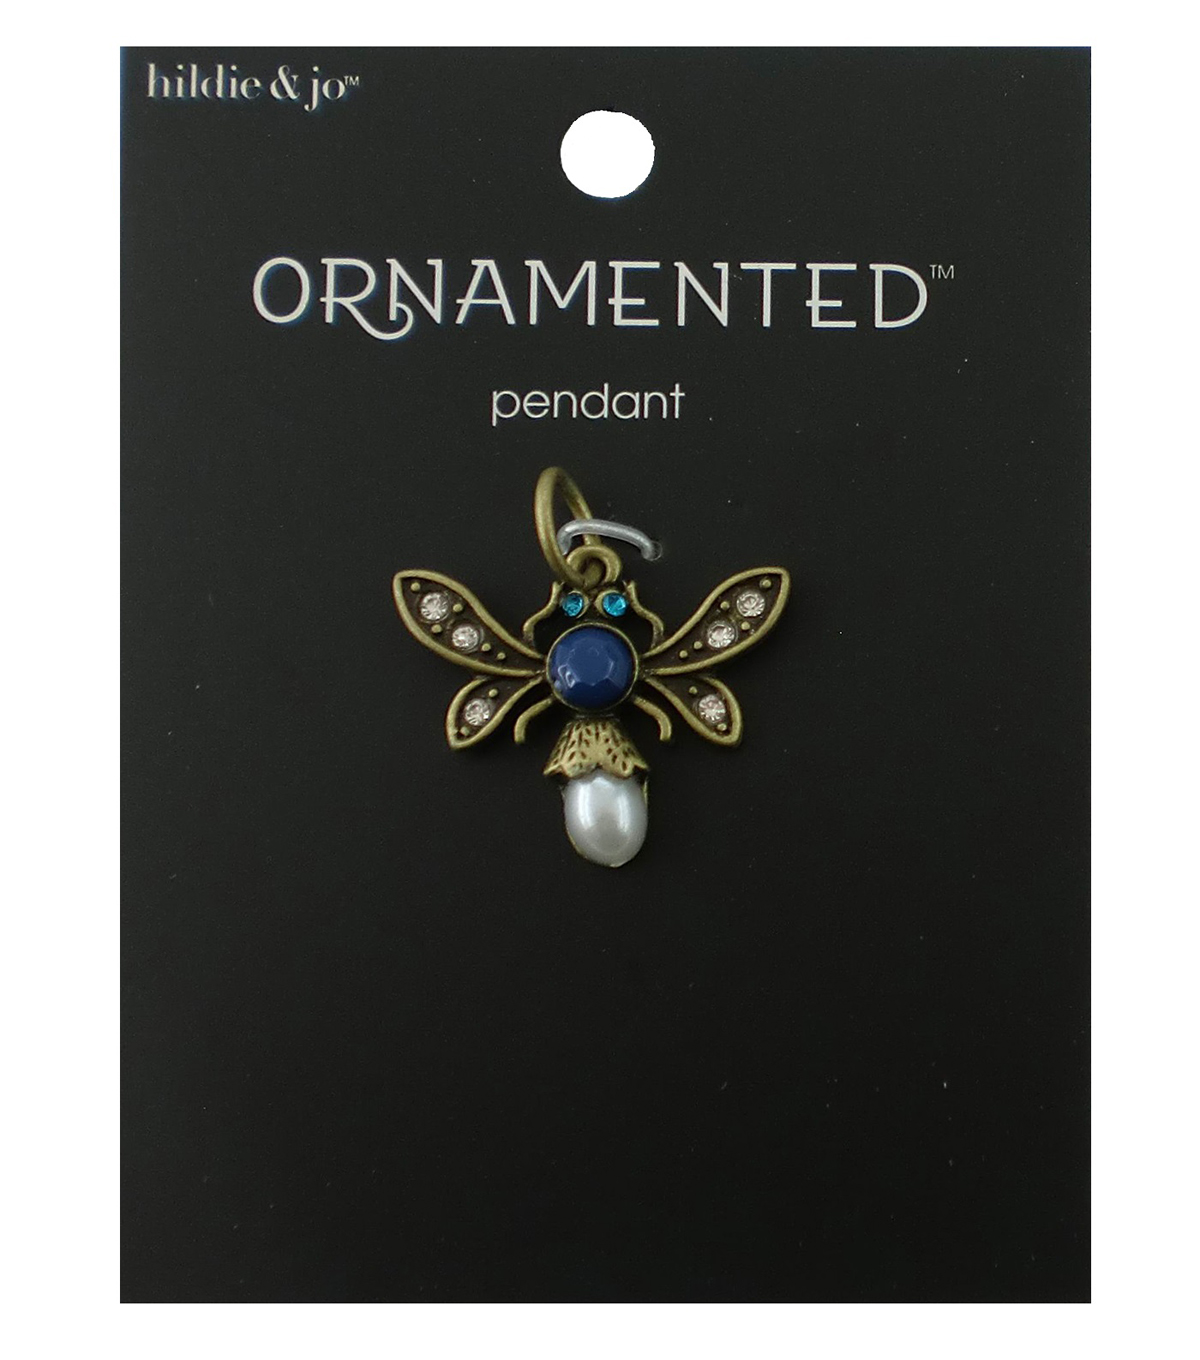 hildie & jo™ Ornamented Bug Antique Gold Pendant-Crystals & Pearls